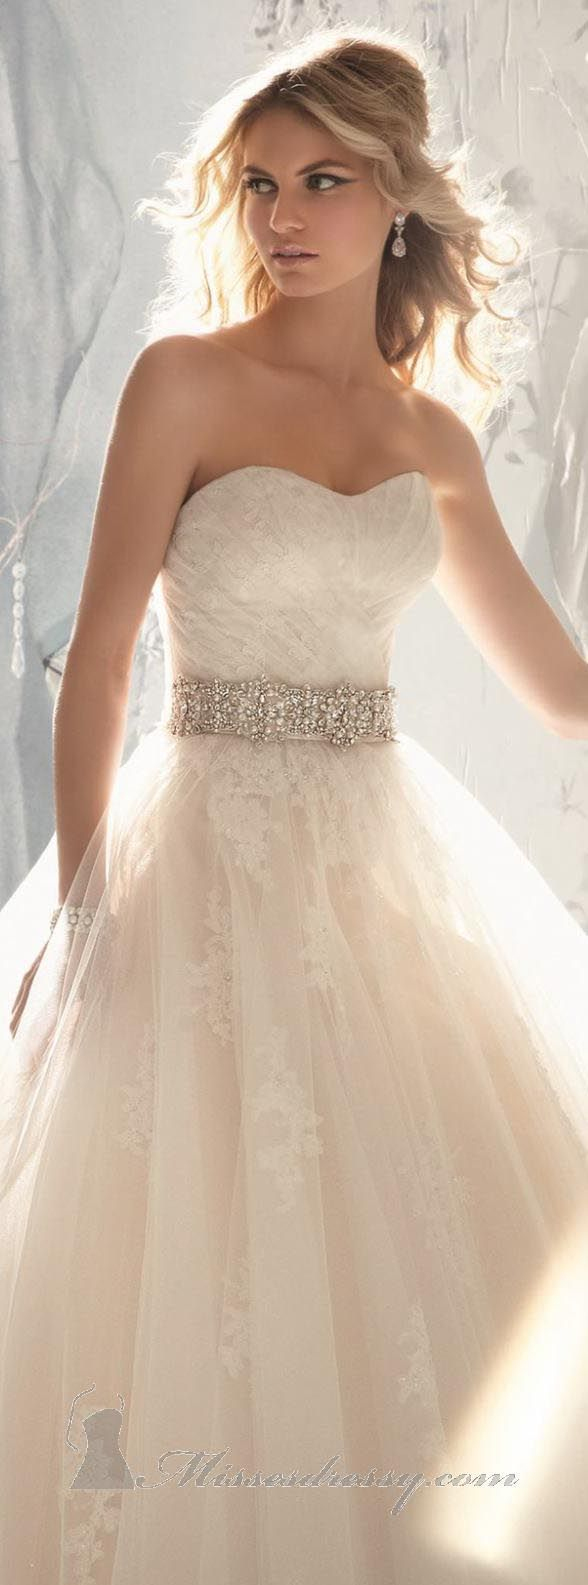 Embellished Pleated Strapless Gown by Bridal by Mori Lee #bride #wedding <3 DREAMING